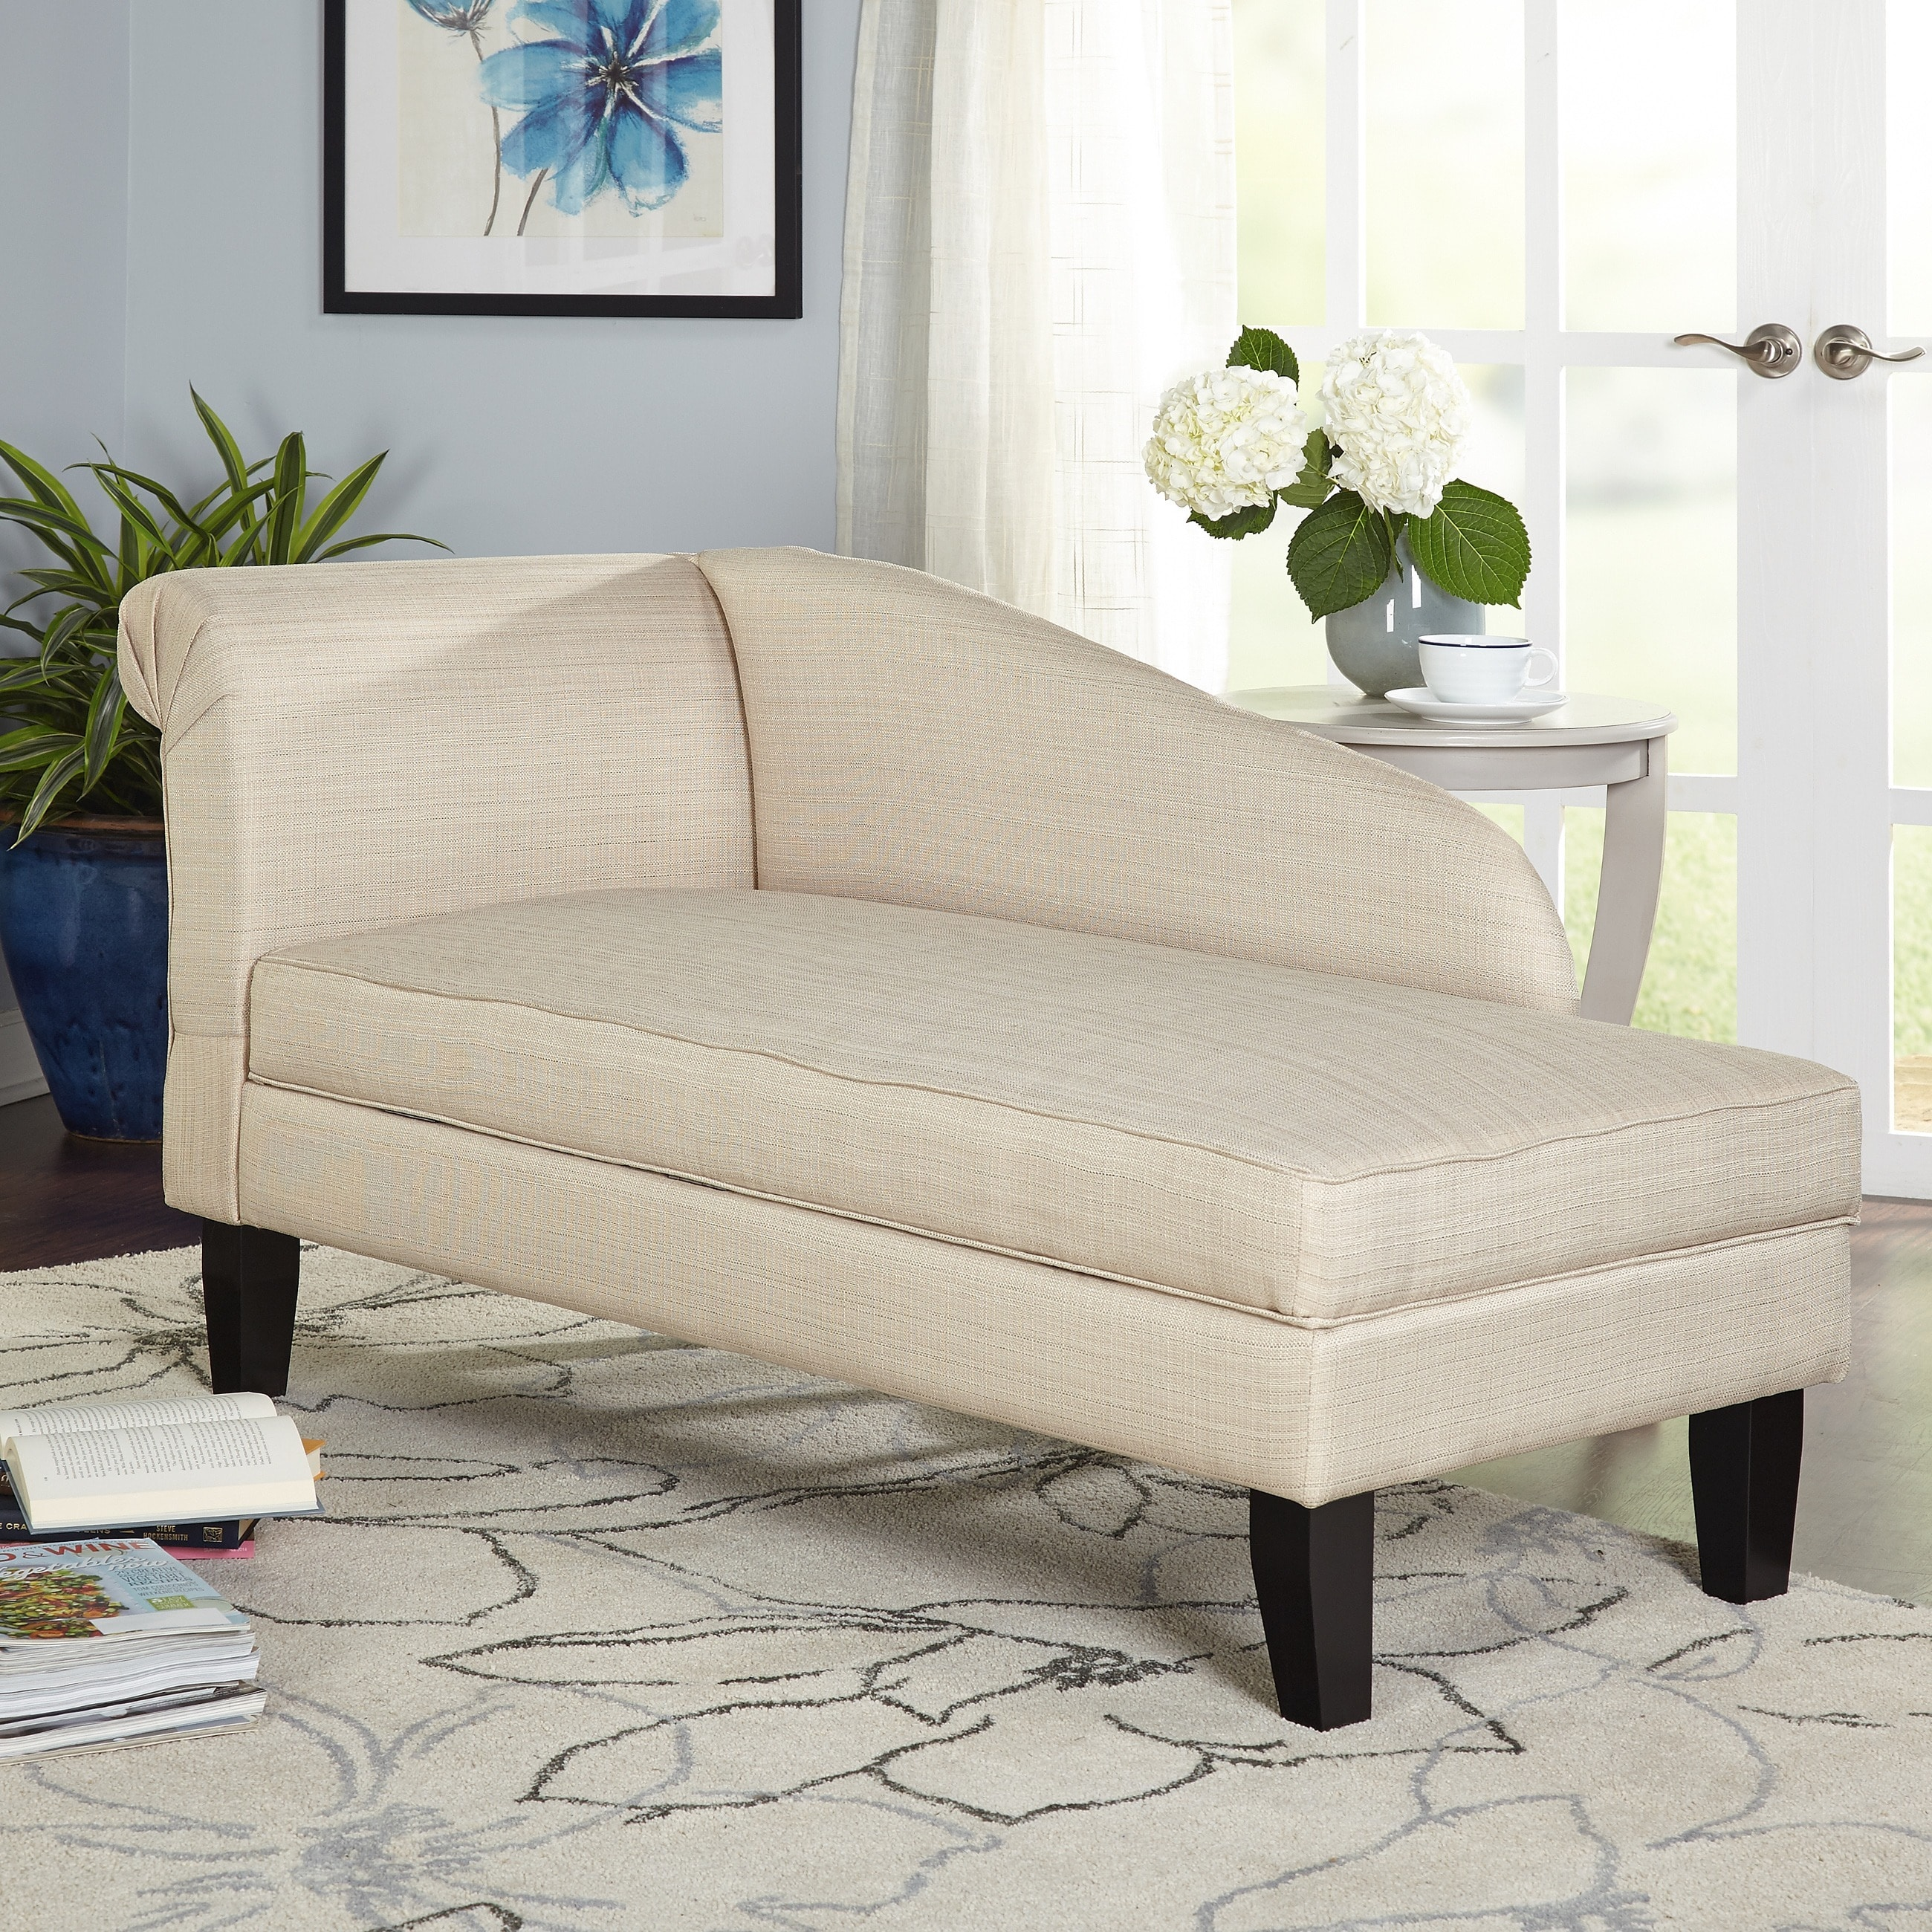 Exceptionnel Shop Simple Living Chaise Lounge With Storage Compartment   On Sale   Free  Shipping Today   Overstock.com   6053486